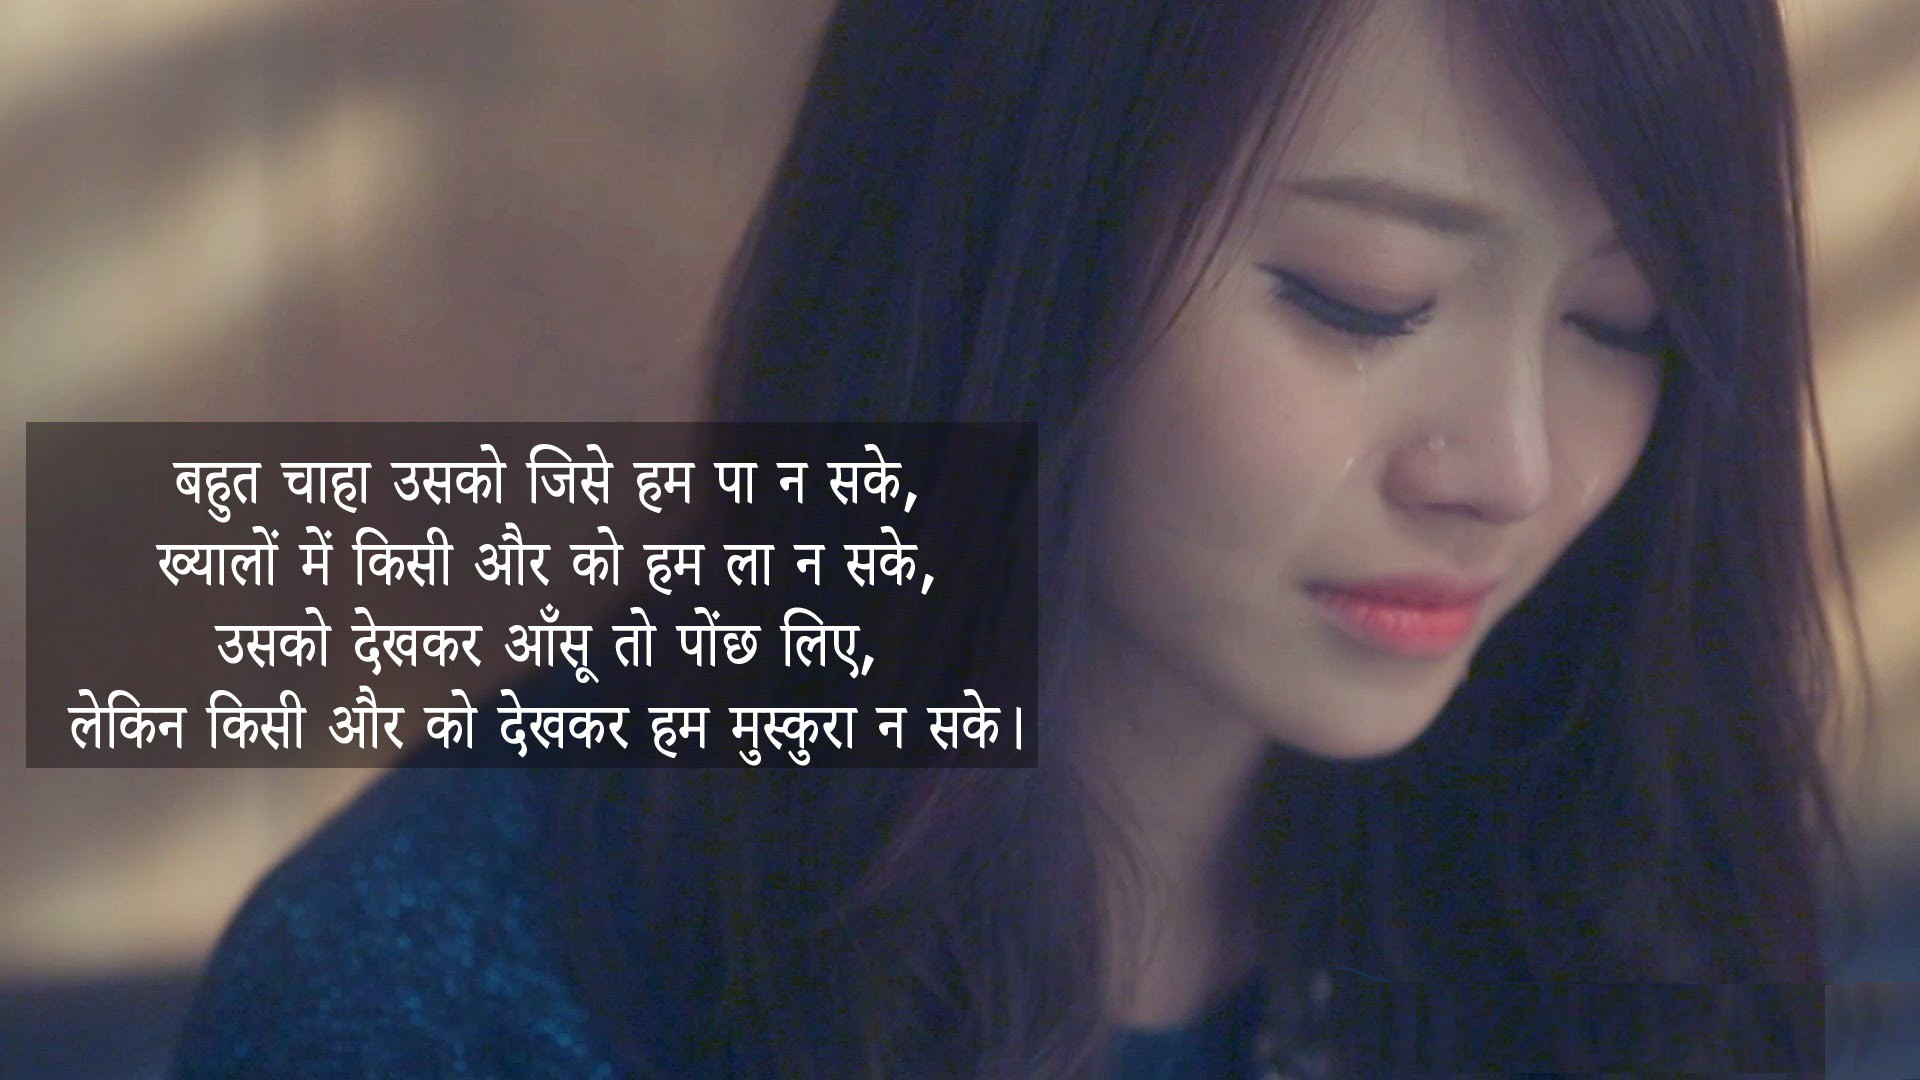 Aashiqui 2 Quotes Wallpaper Shero Shayari Wallpaper 56 Images